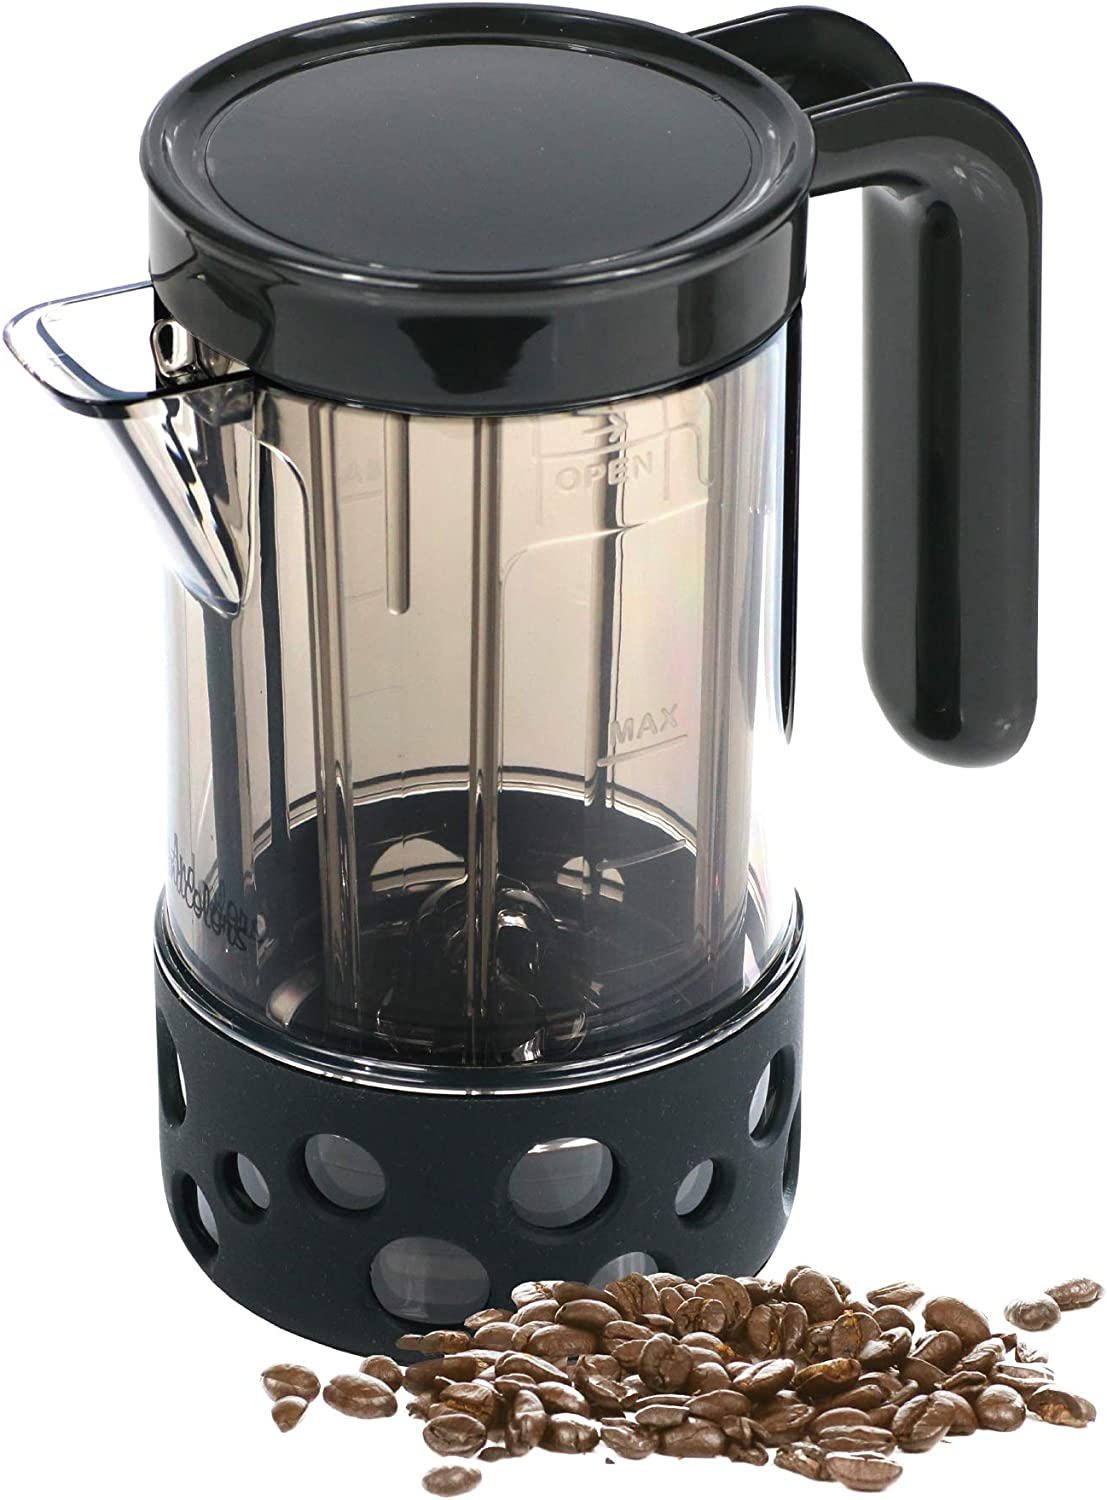 Andcolors French Press Coffee-maker Coffee Press 2 cups 17 oz – High Grade Stainless Steel Mesh Filter – BPA Free Heat Resistant Pot Dishwasher Safe Black, Silicone